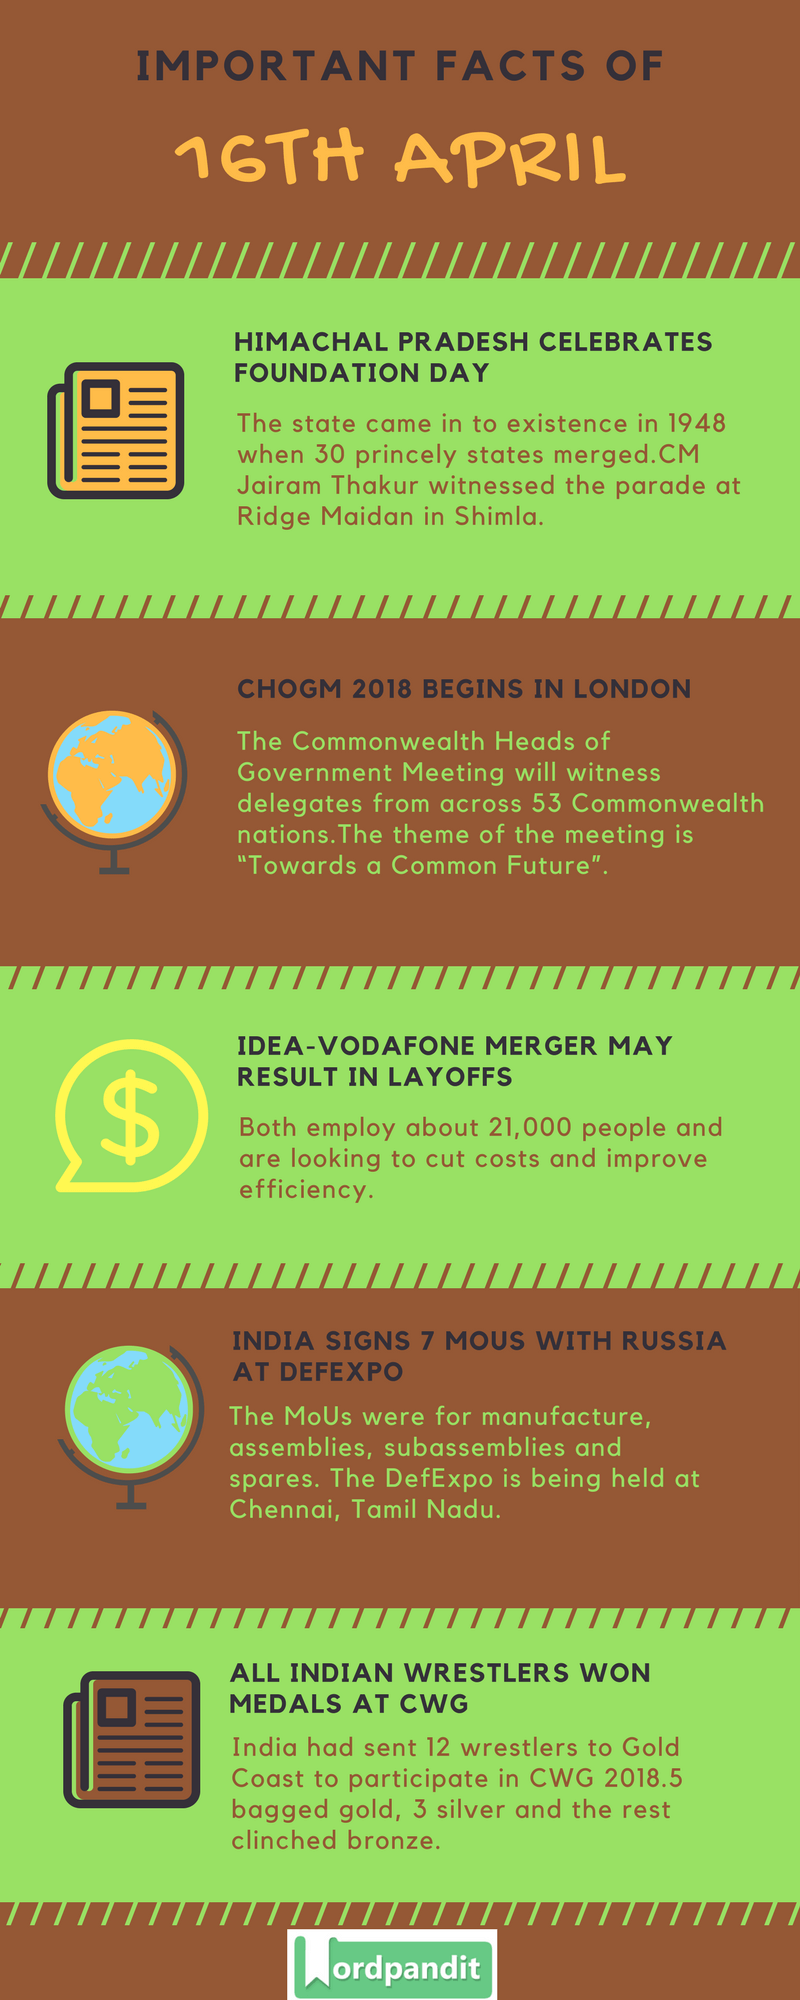 Daily Current Affairs 16 April 2018 Current Affairs Quiz April 16 2018 Current Affairs Infographic